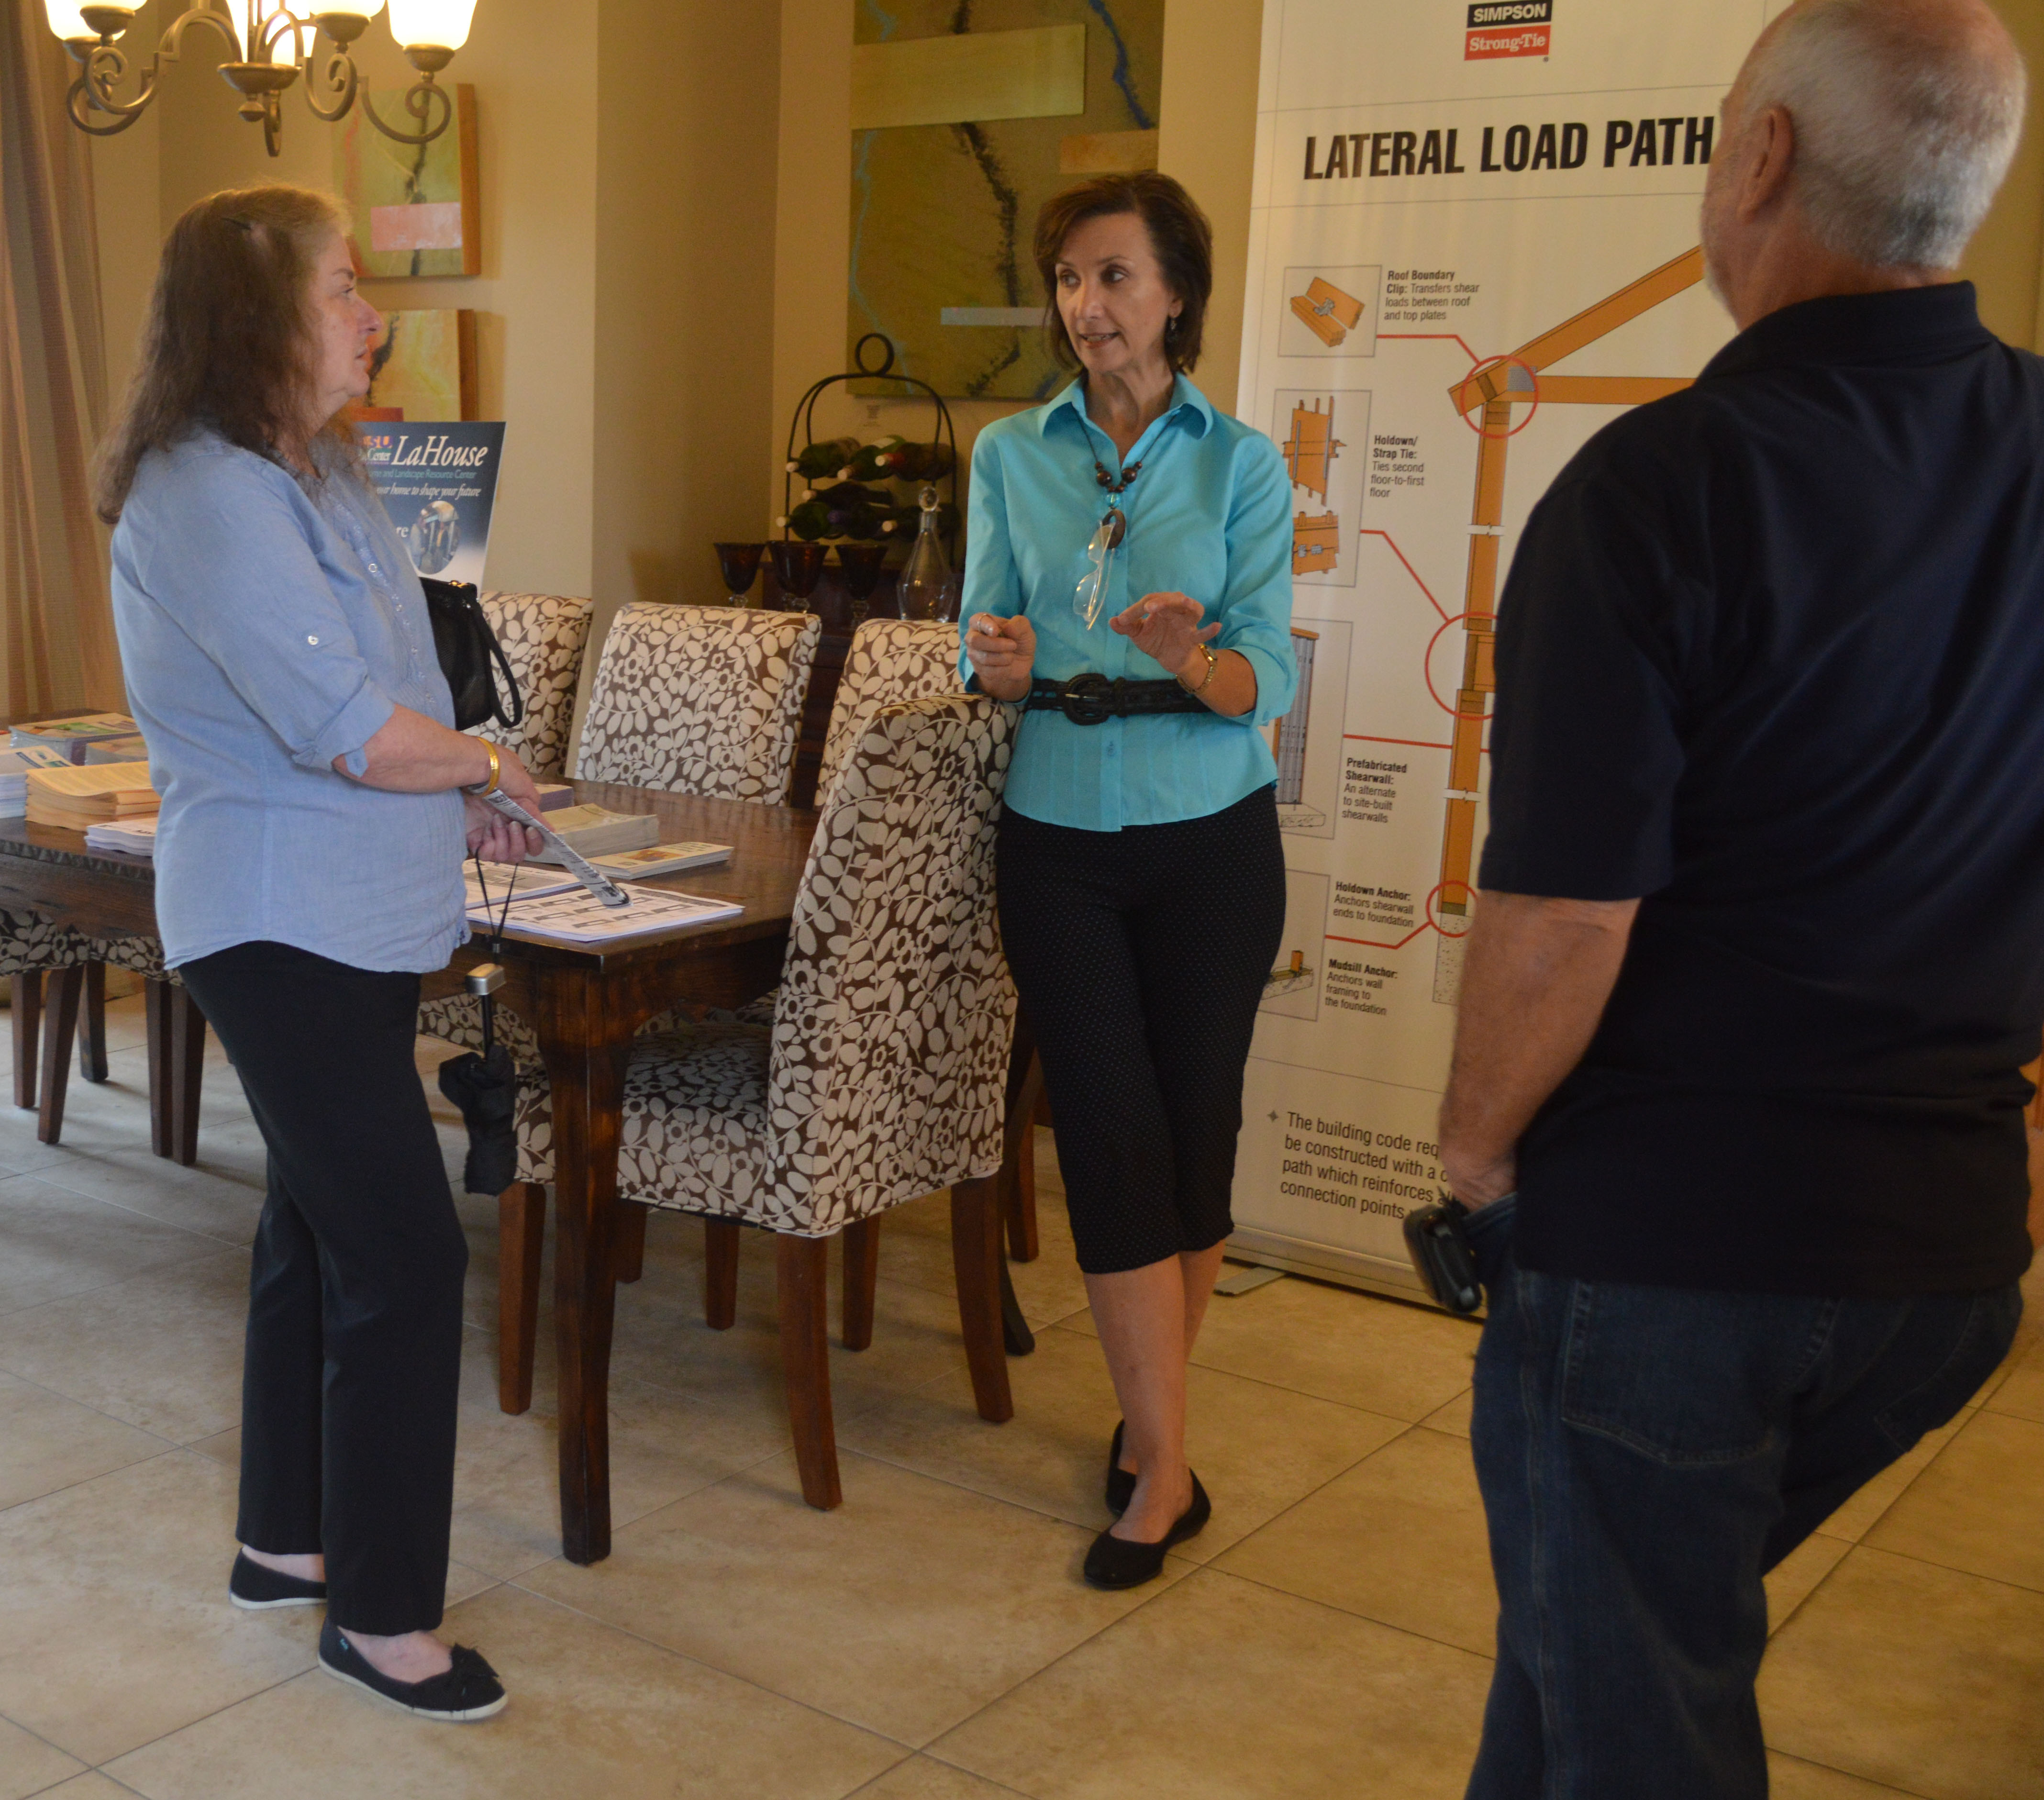 LaHouse displays lessons learned from hurricanes Katrina, Rita